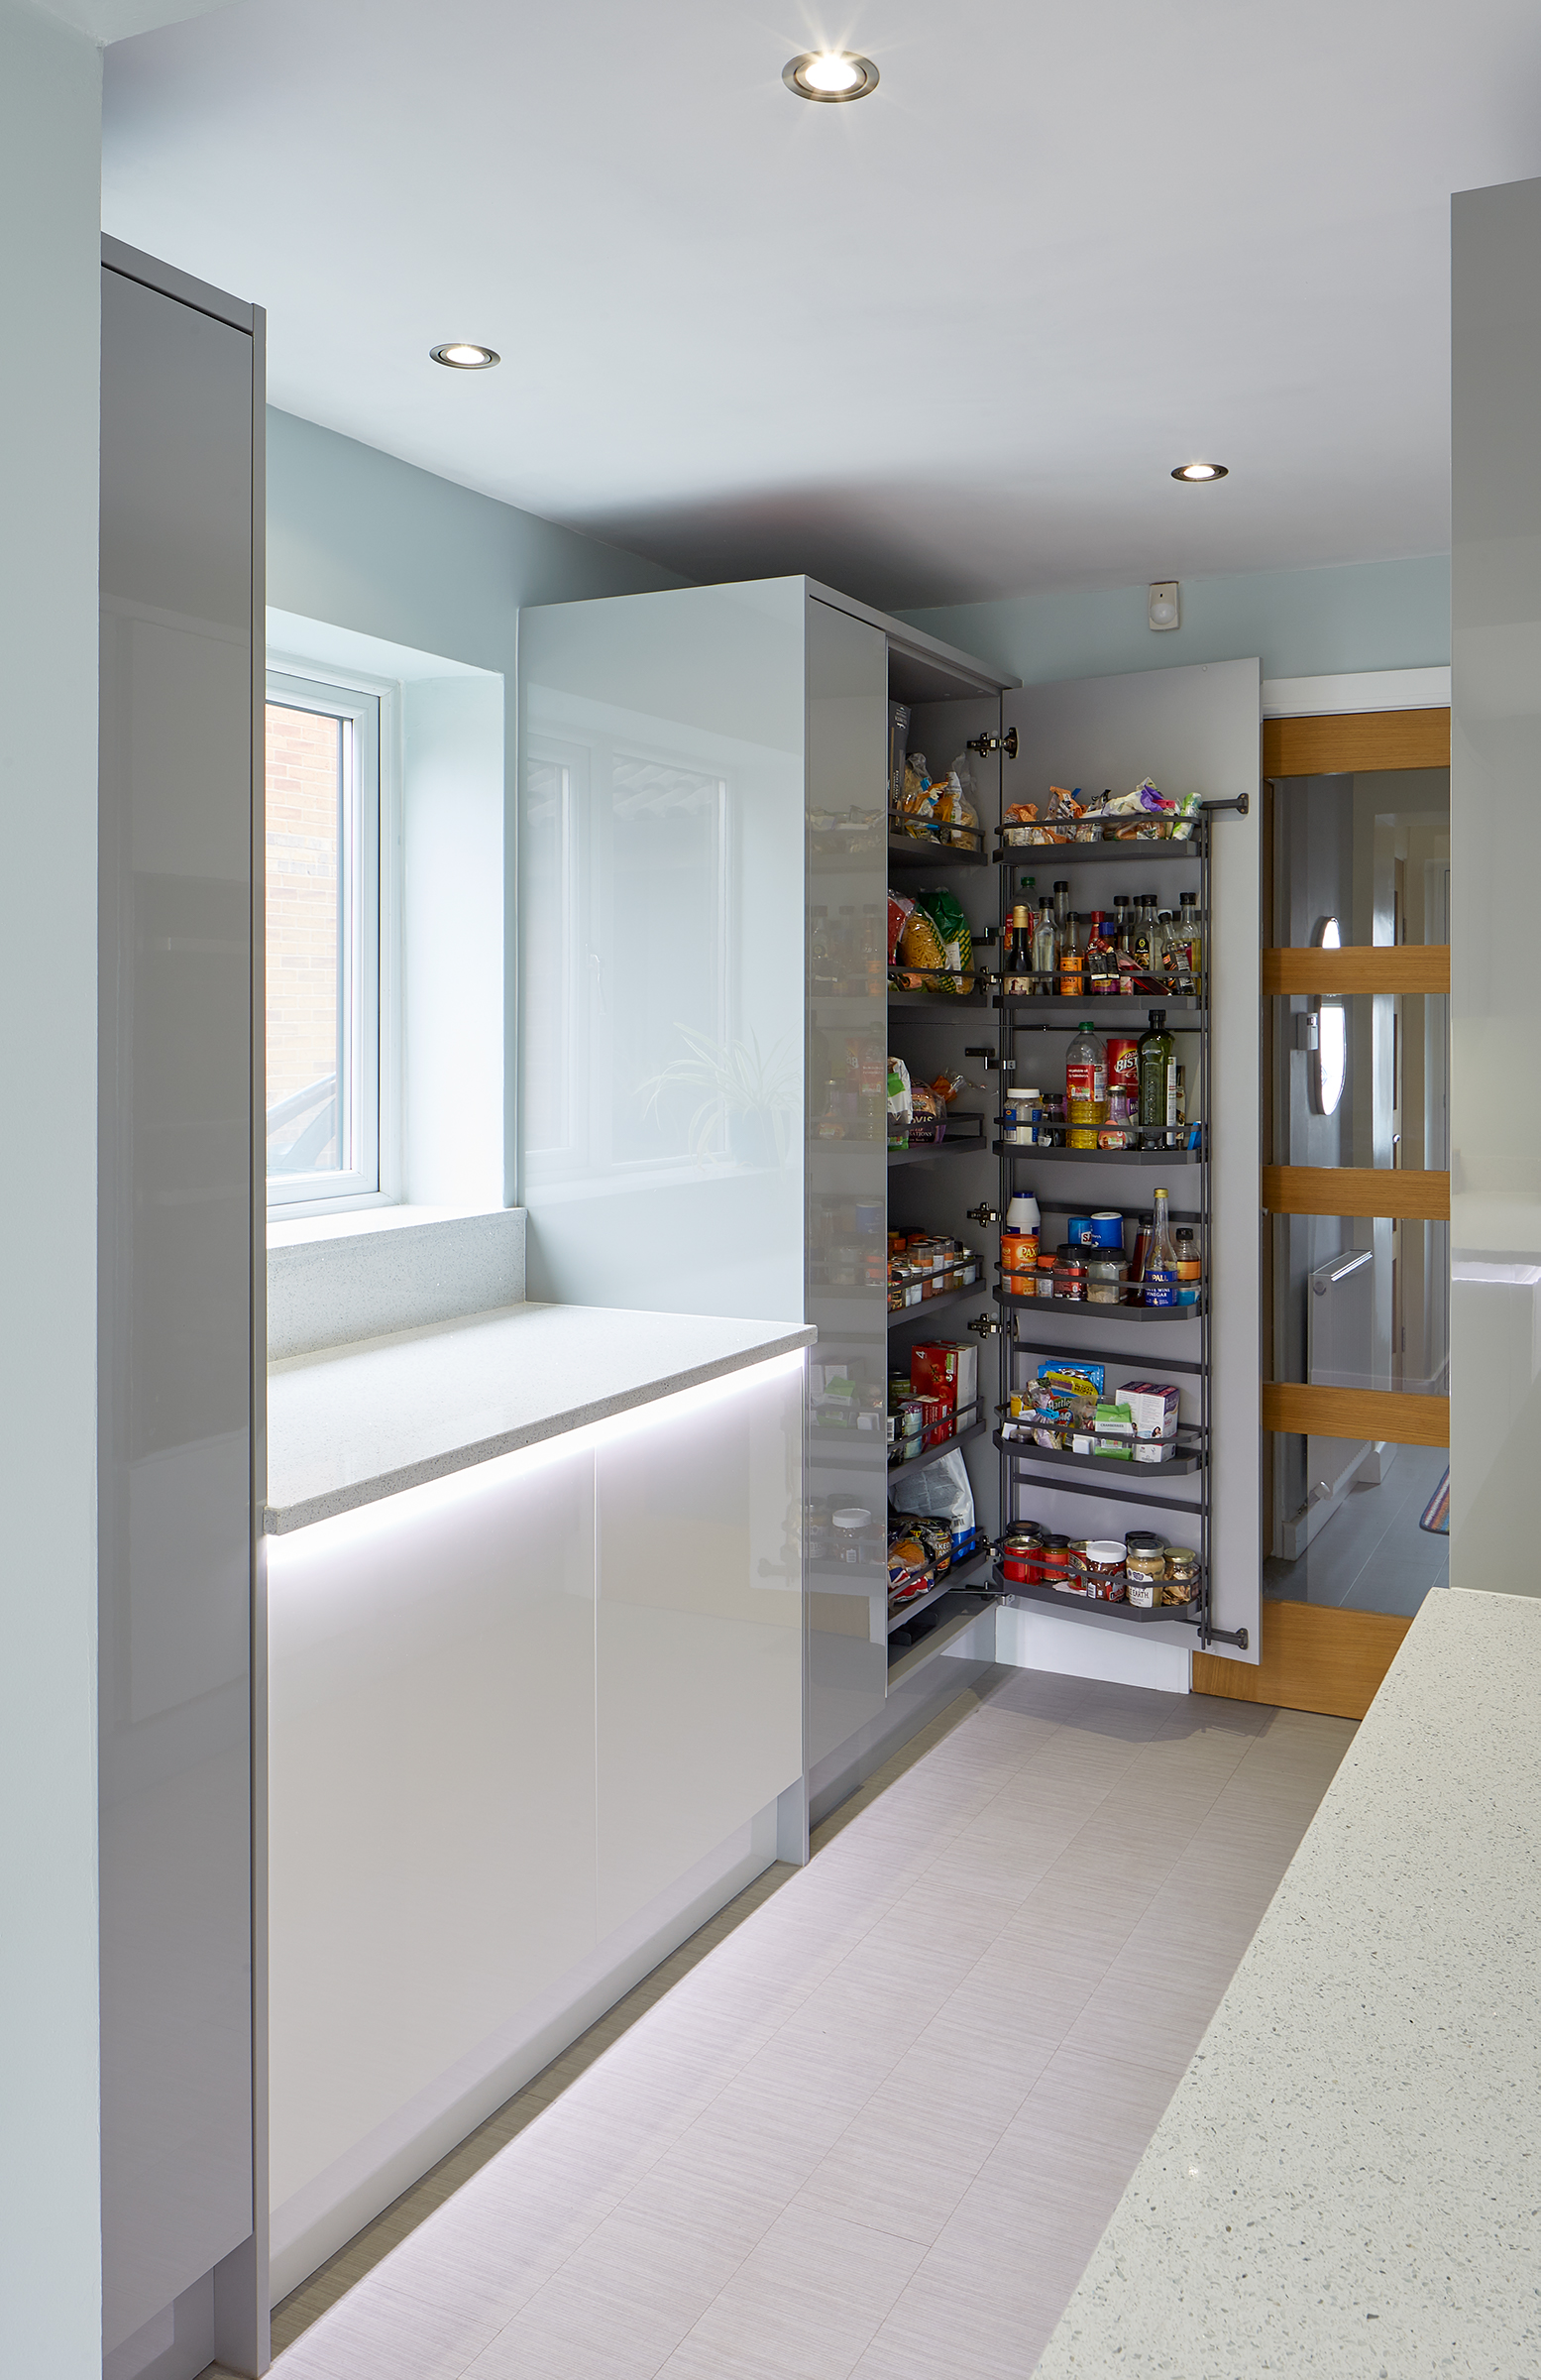 Bespoke fitted kitchen in porter silver grey and porcelain kitchen.